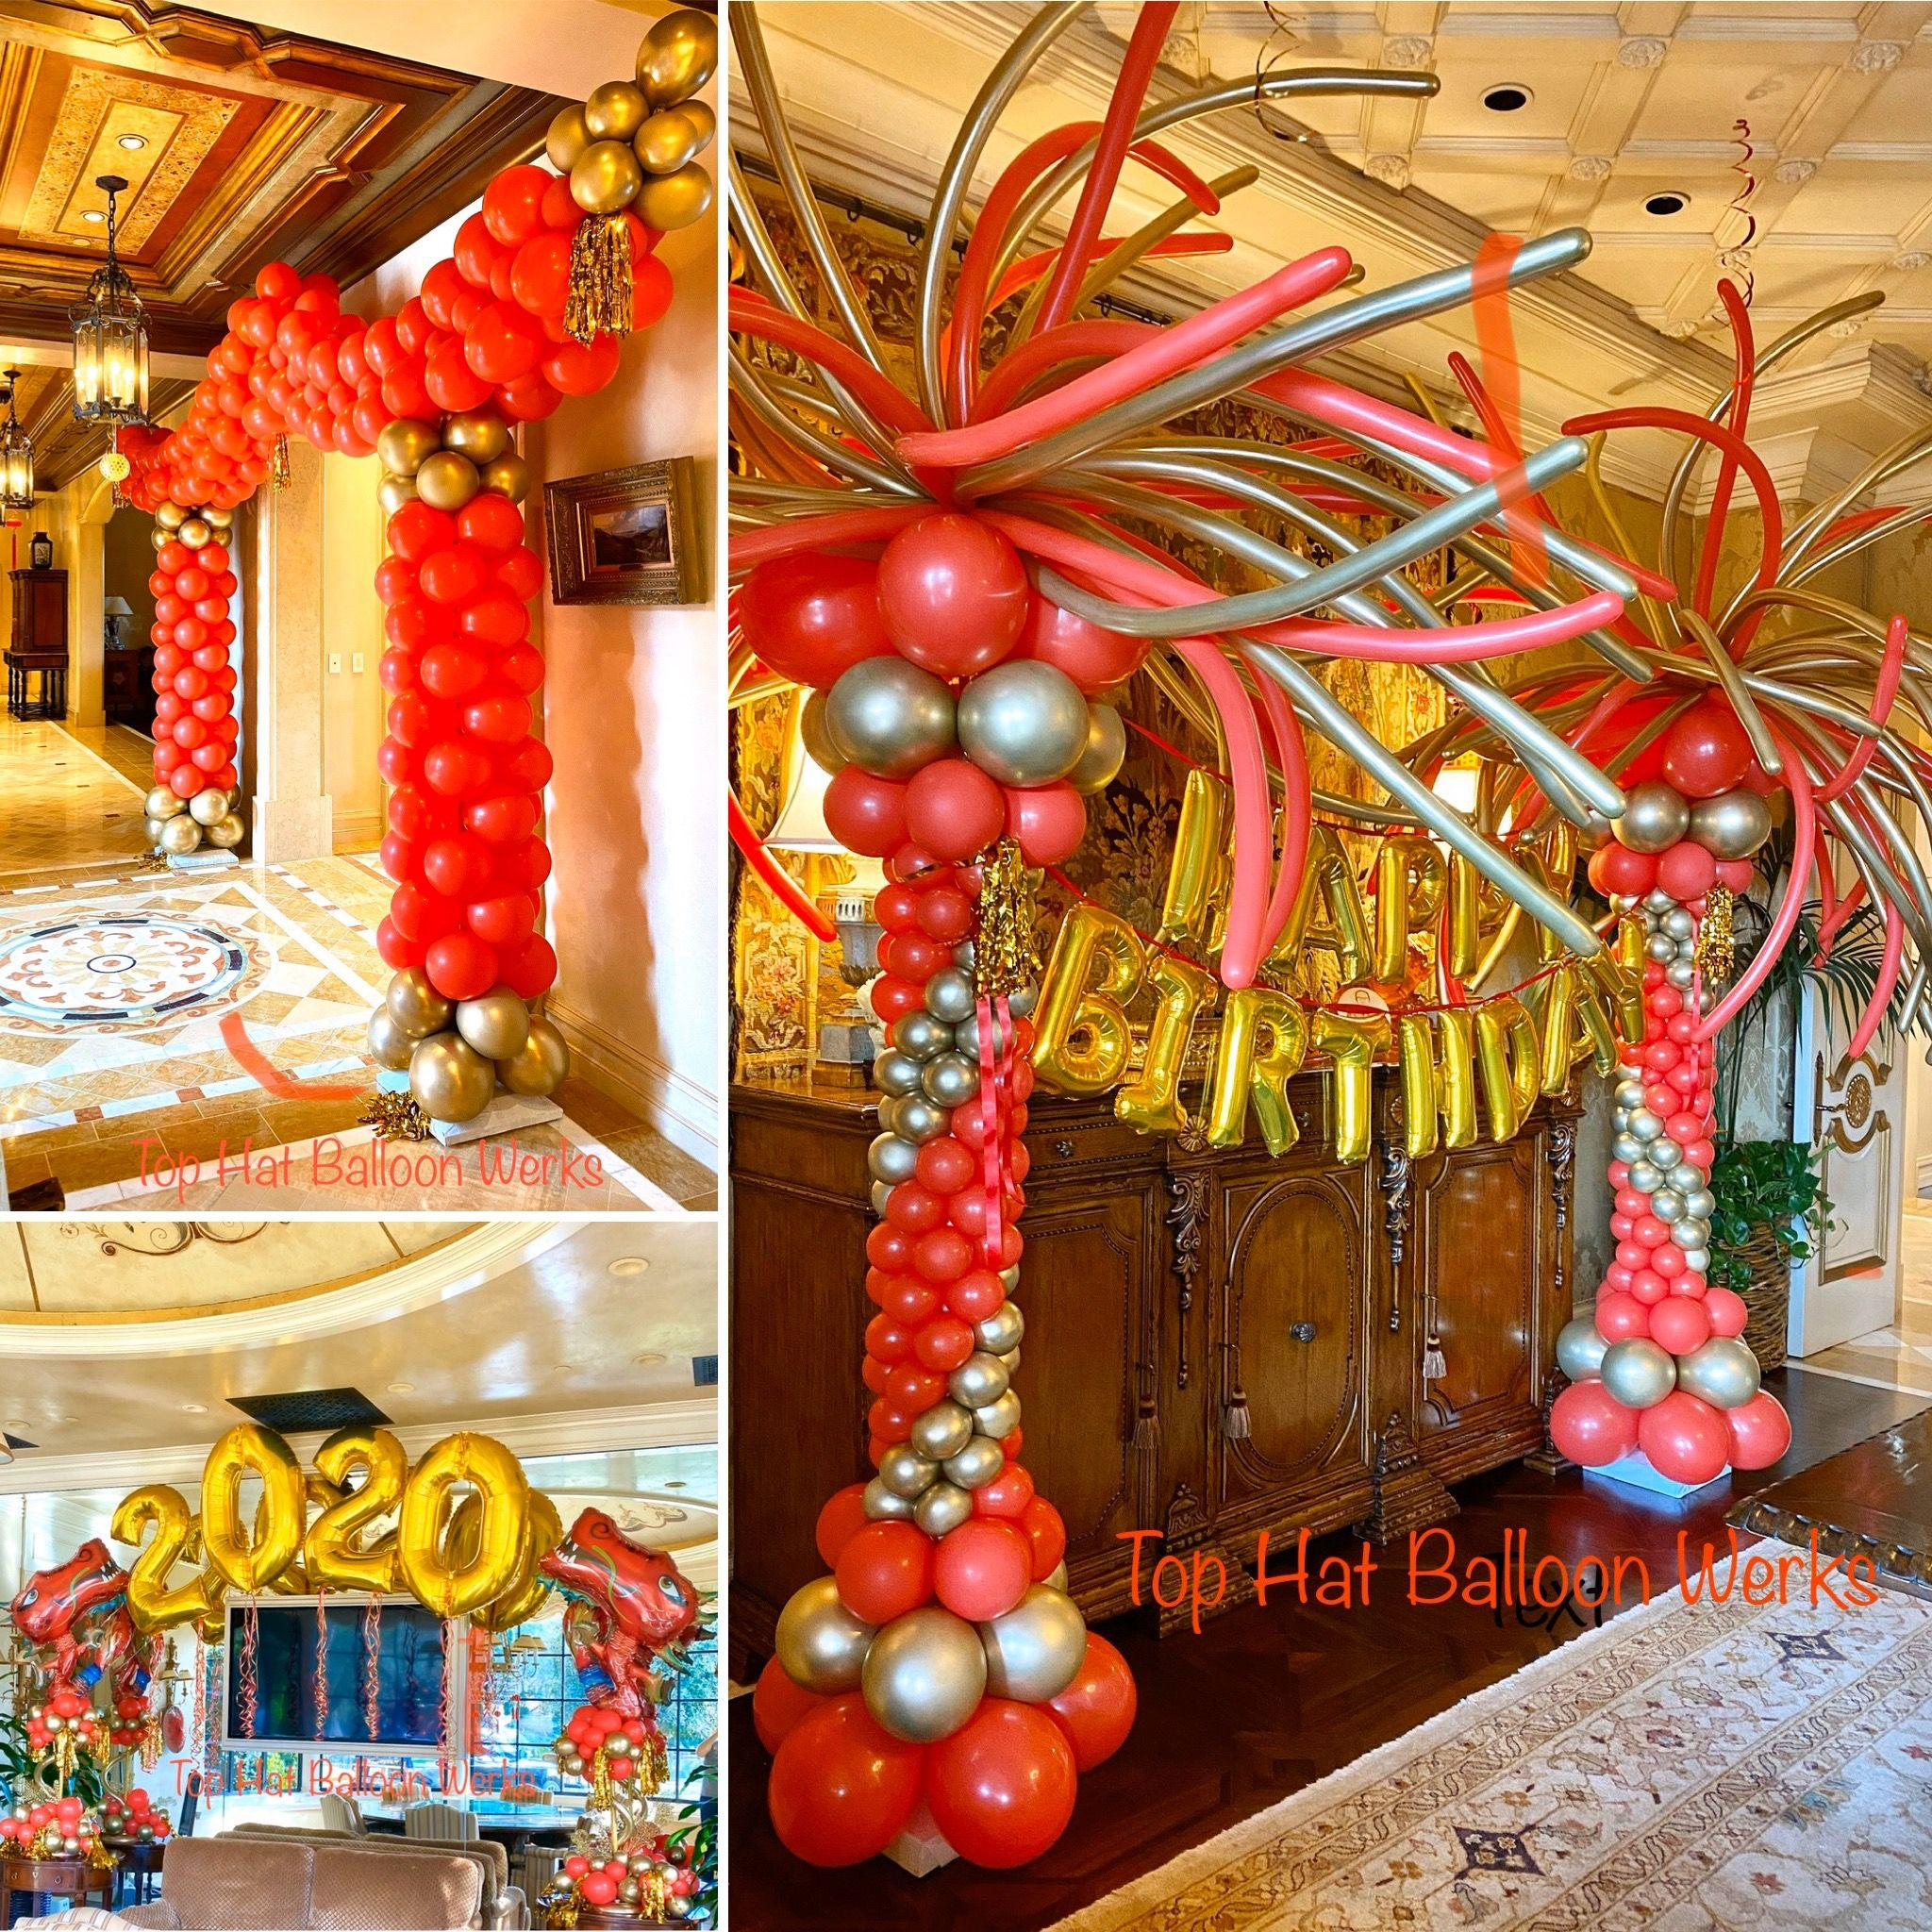 Chinese New Year 2020 in 2020 Balloon arch, Balloon